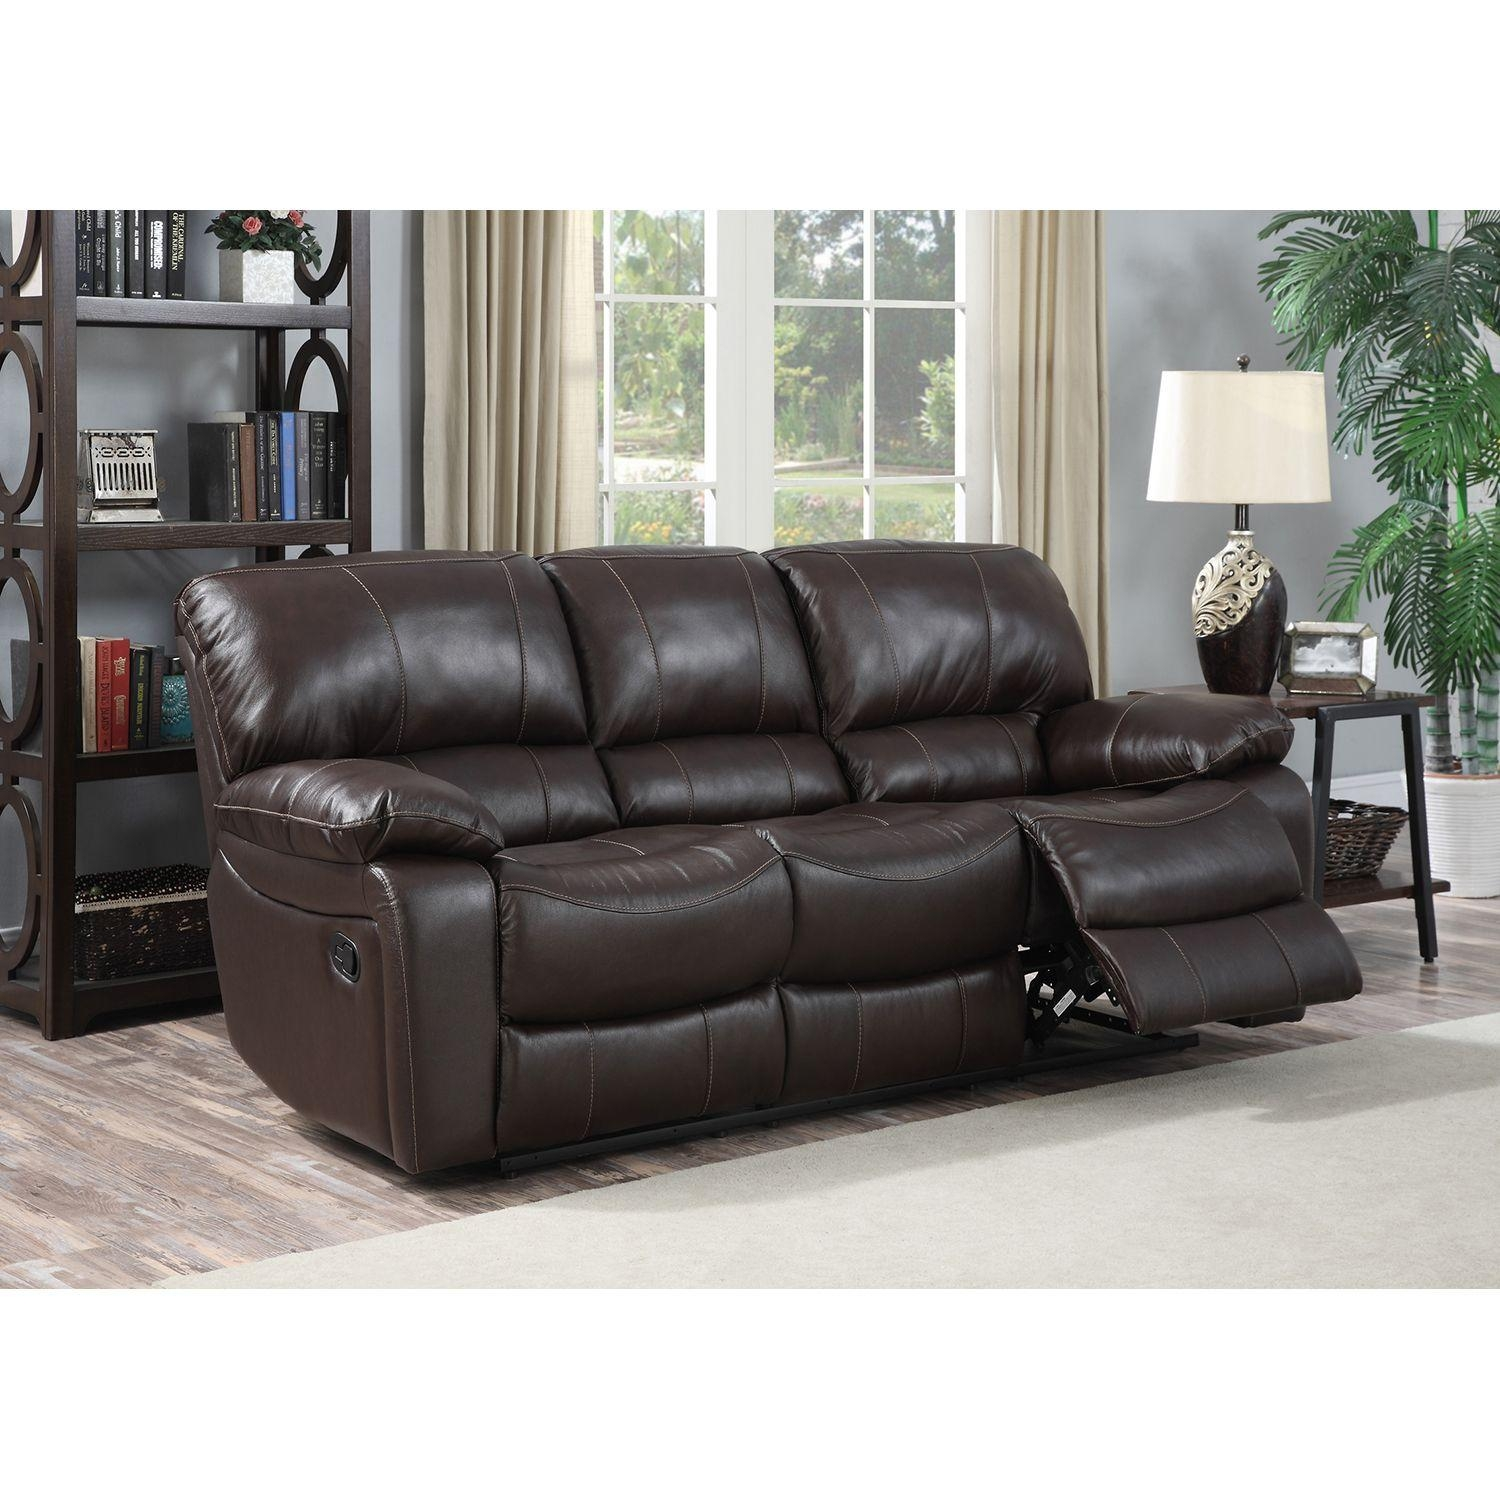 Berkline Leather Sofa | Sofa Gallery | Kengire Within Berkline Recliner Sofas (Image 1 of 20)